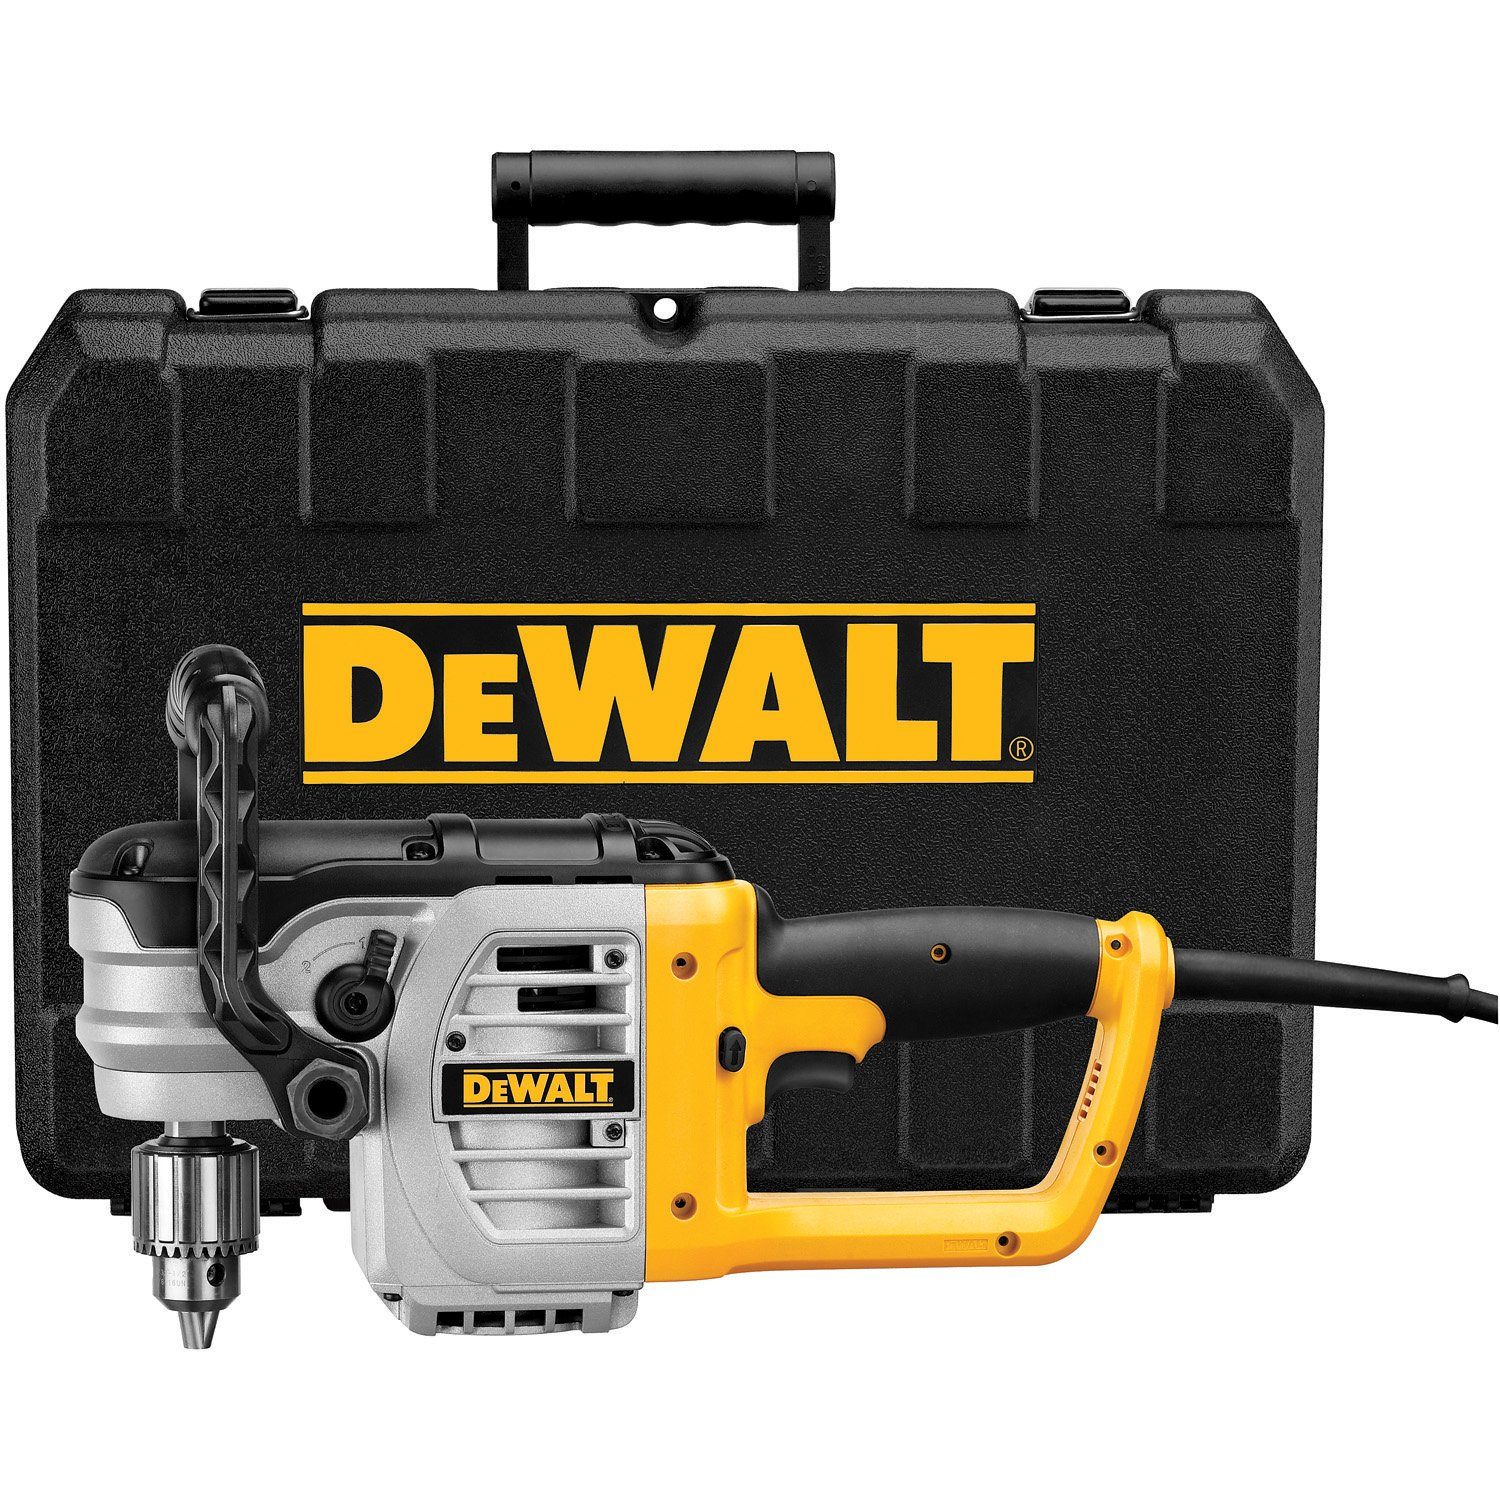 DEWALT Electric Drill, Right Angle Stud and Joist, Bind-Up Control, 1/2-Inch, 11-Amp (DWD460K) by DEWALT